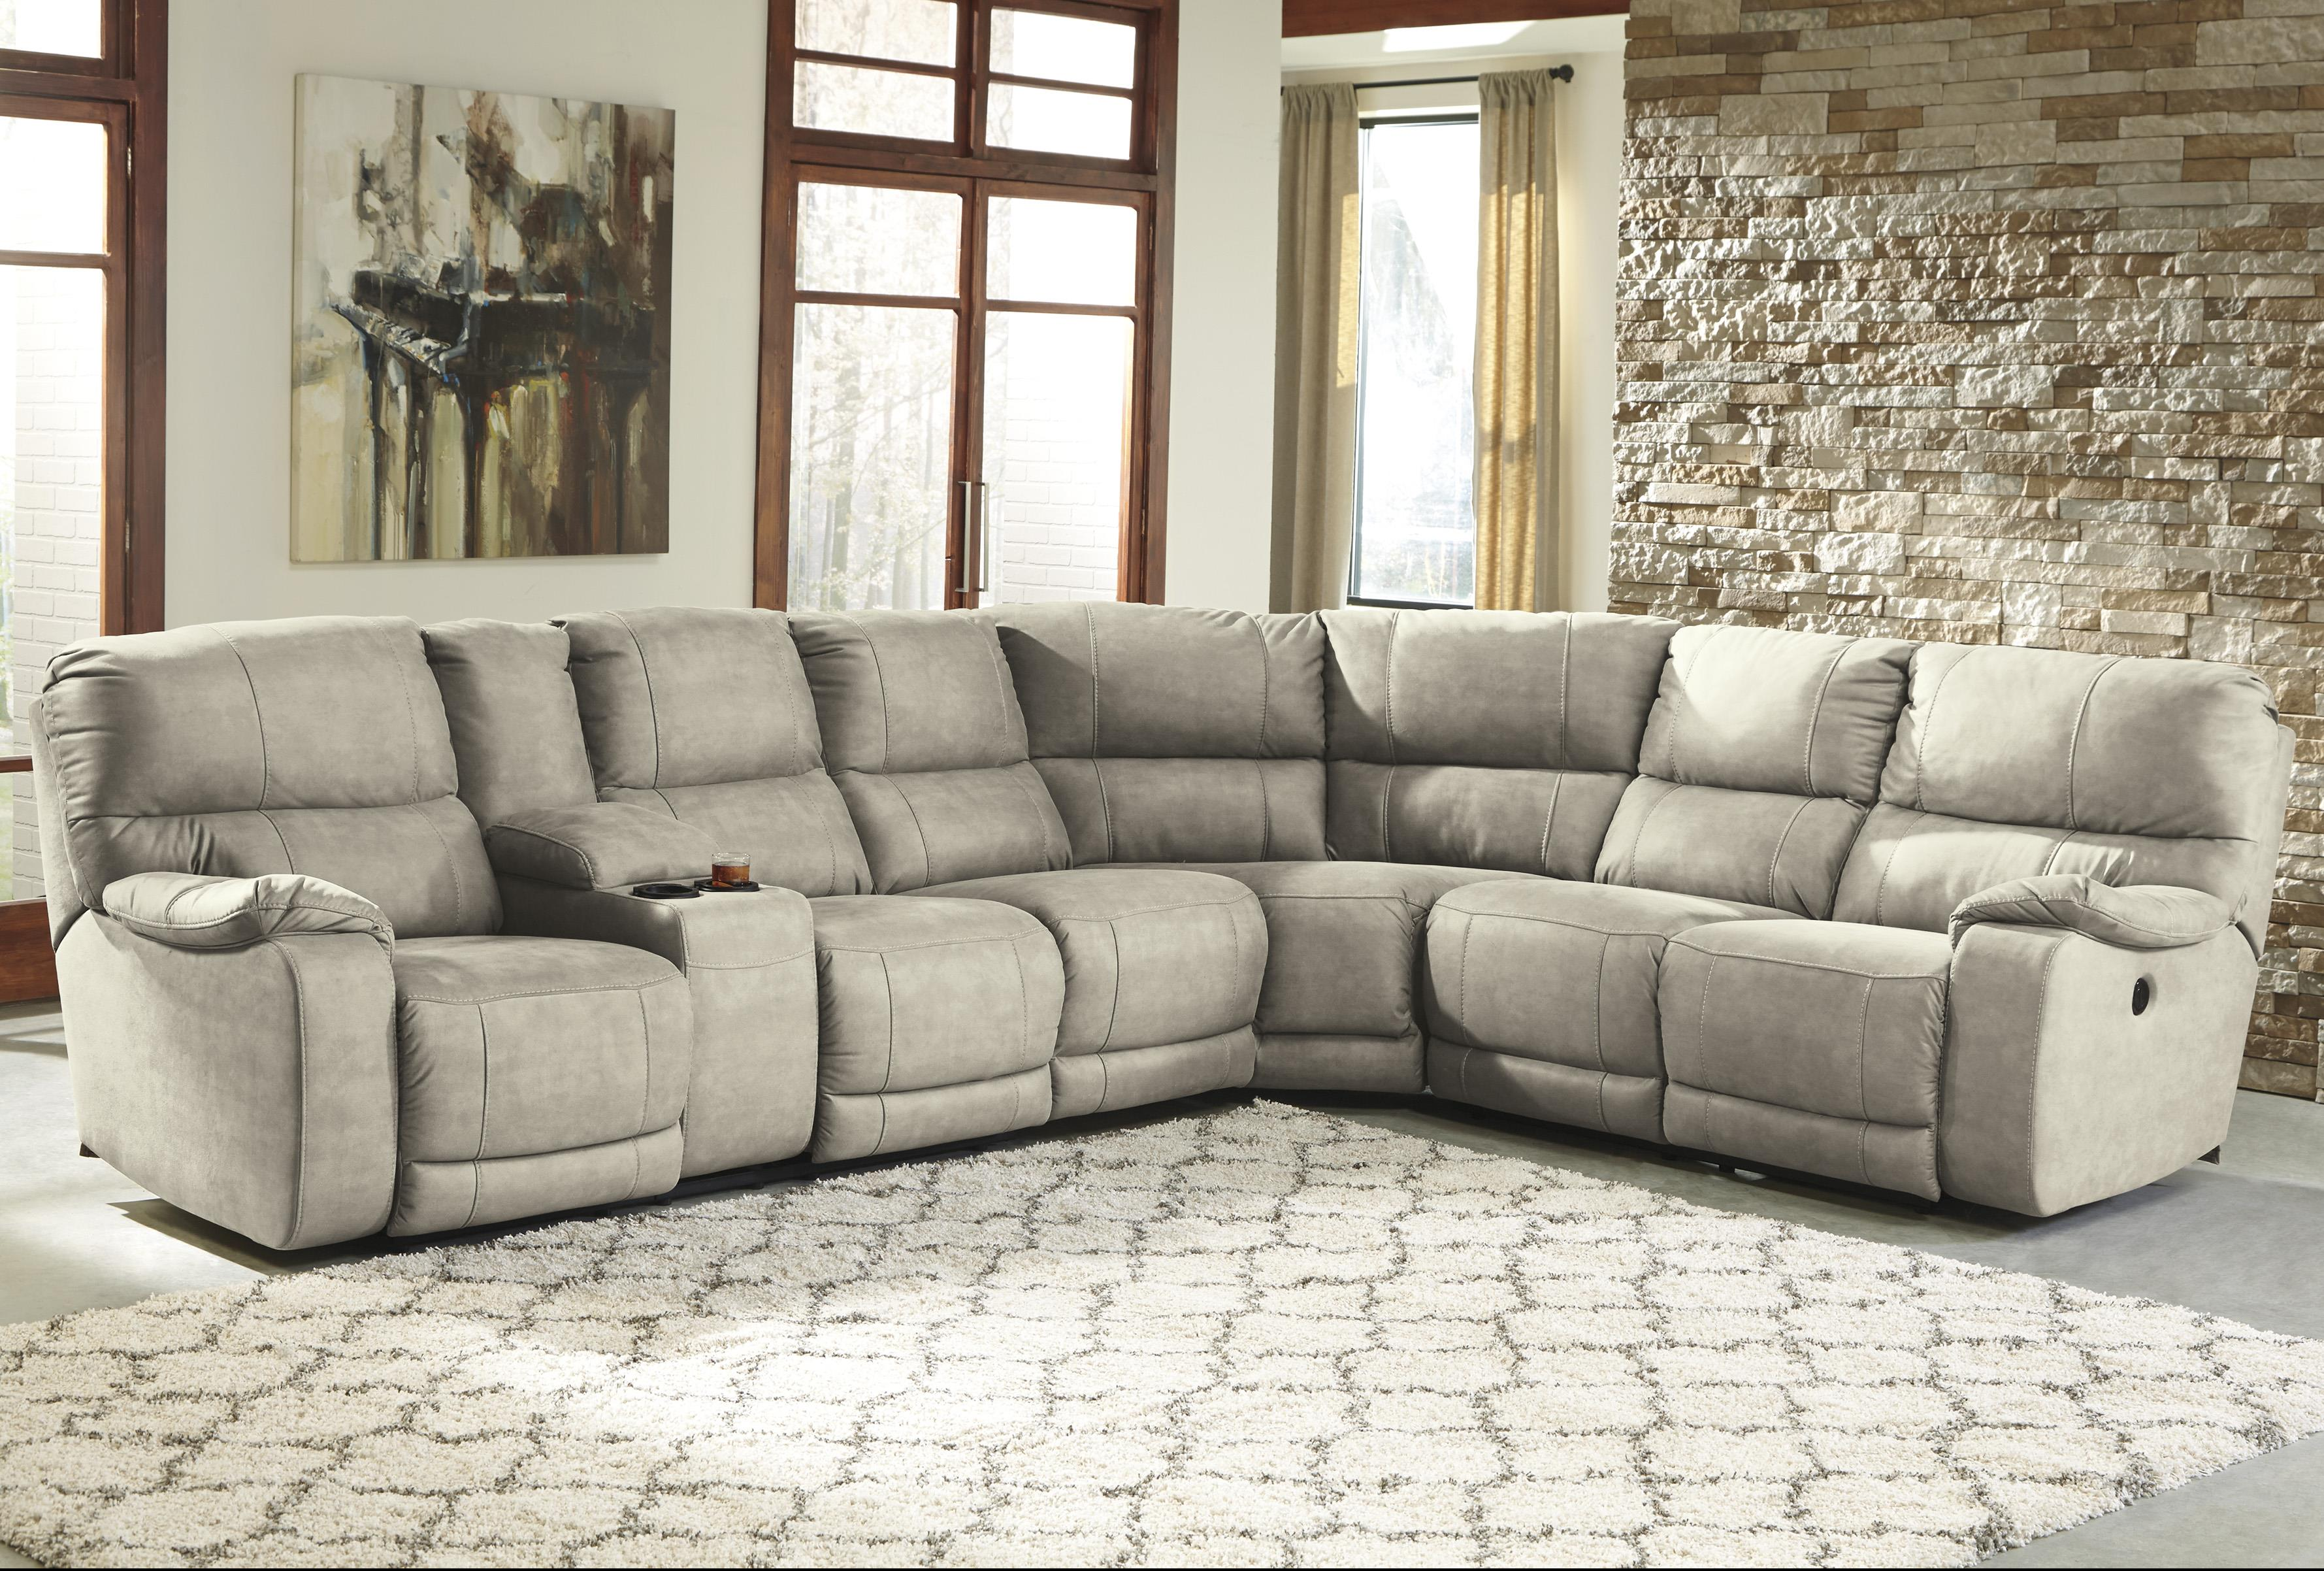 Benchcraft Bohannon Power Reclining Sectional with Console - Item Number: 5740101+46+77+75